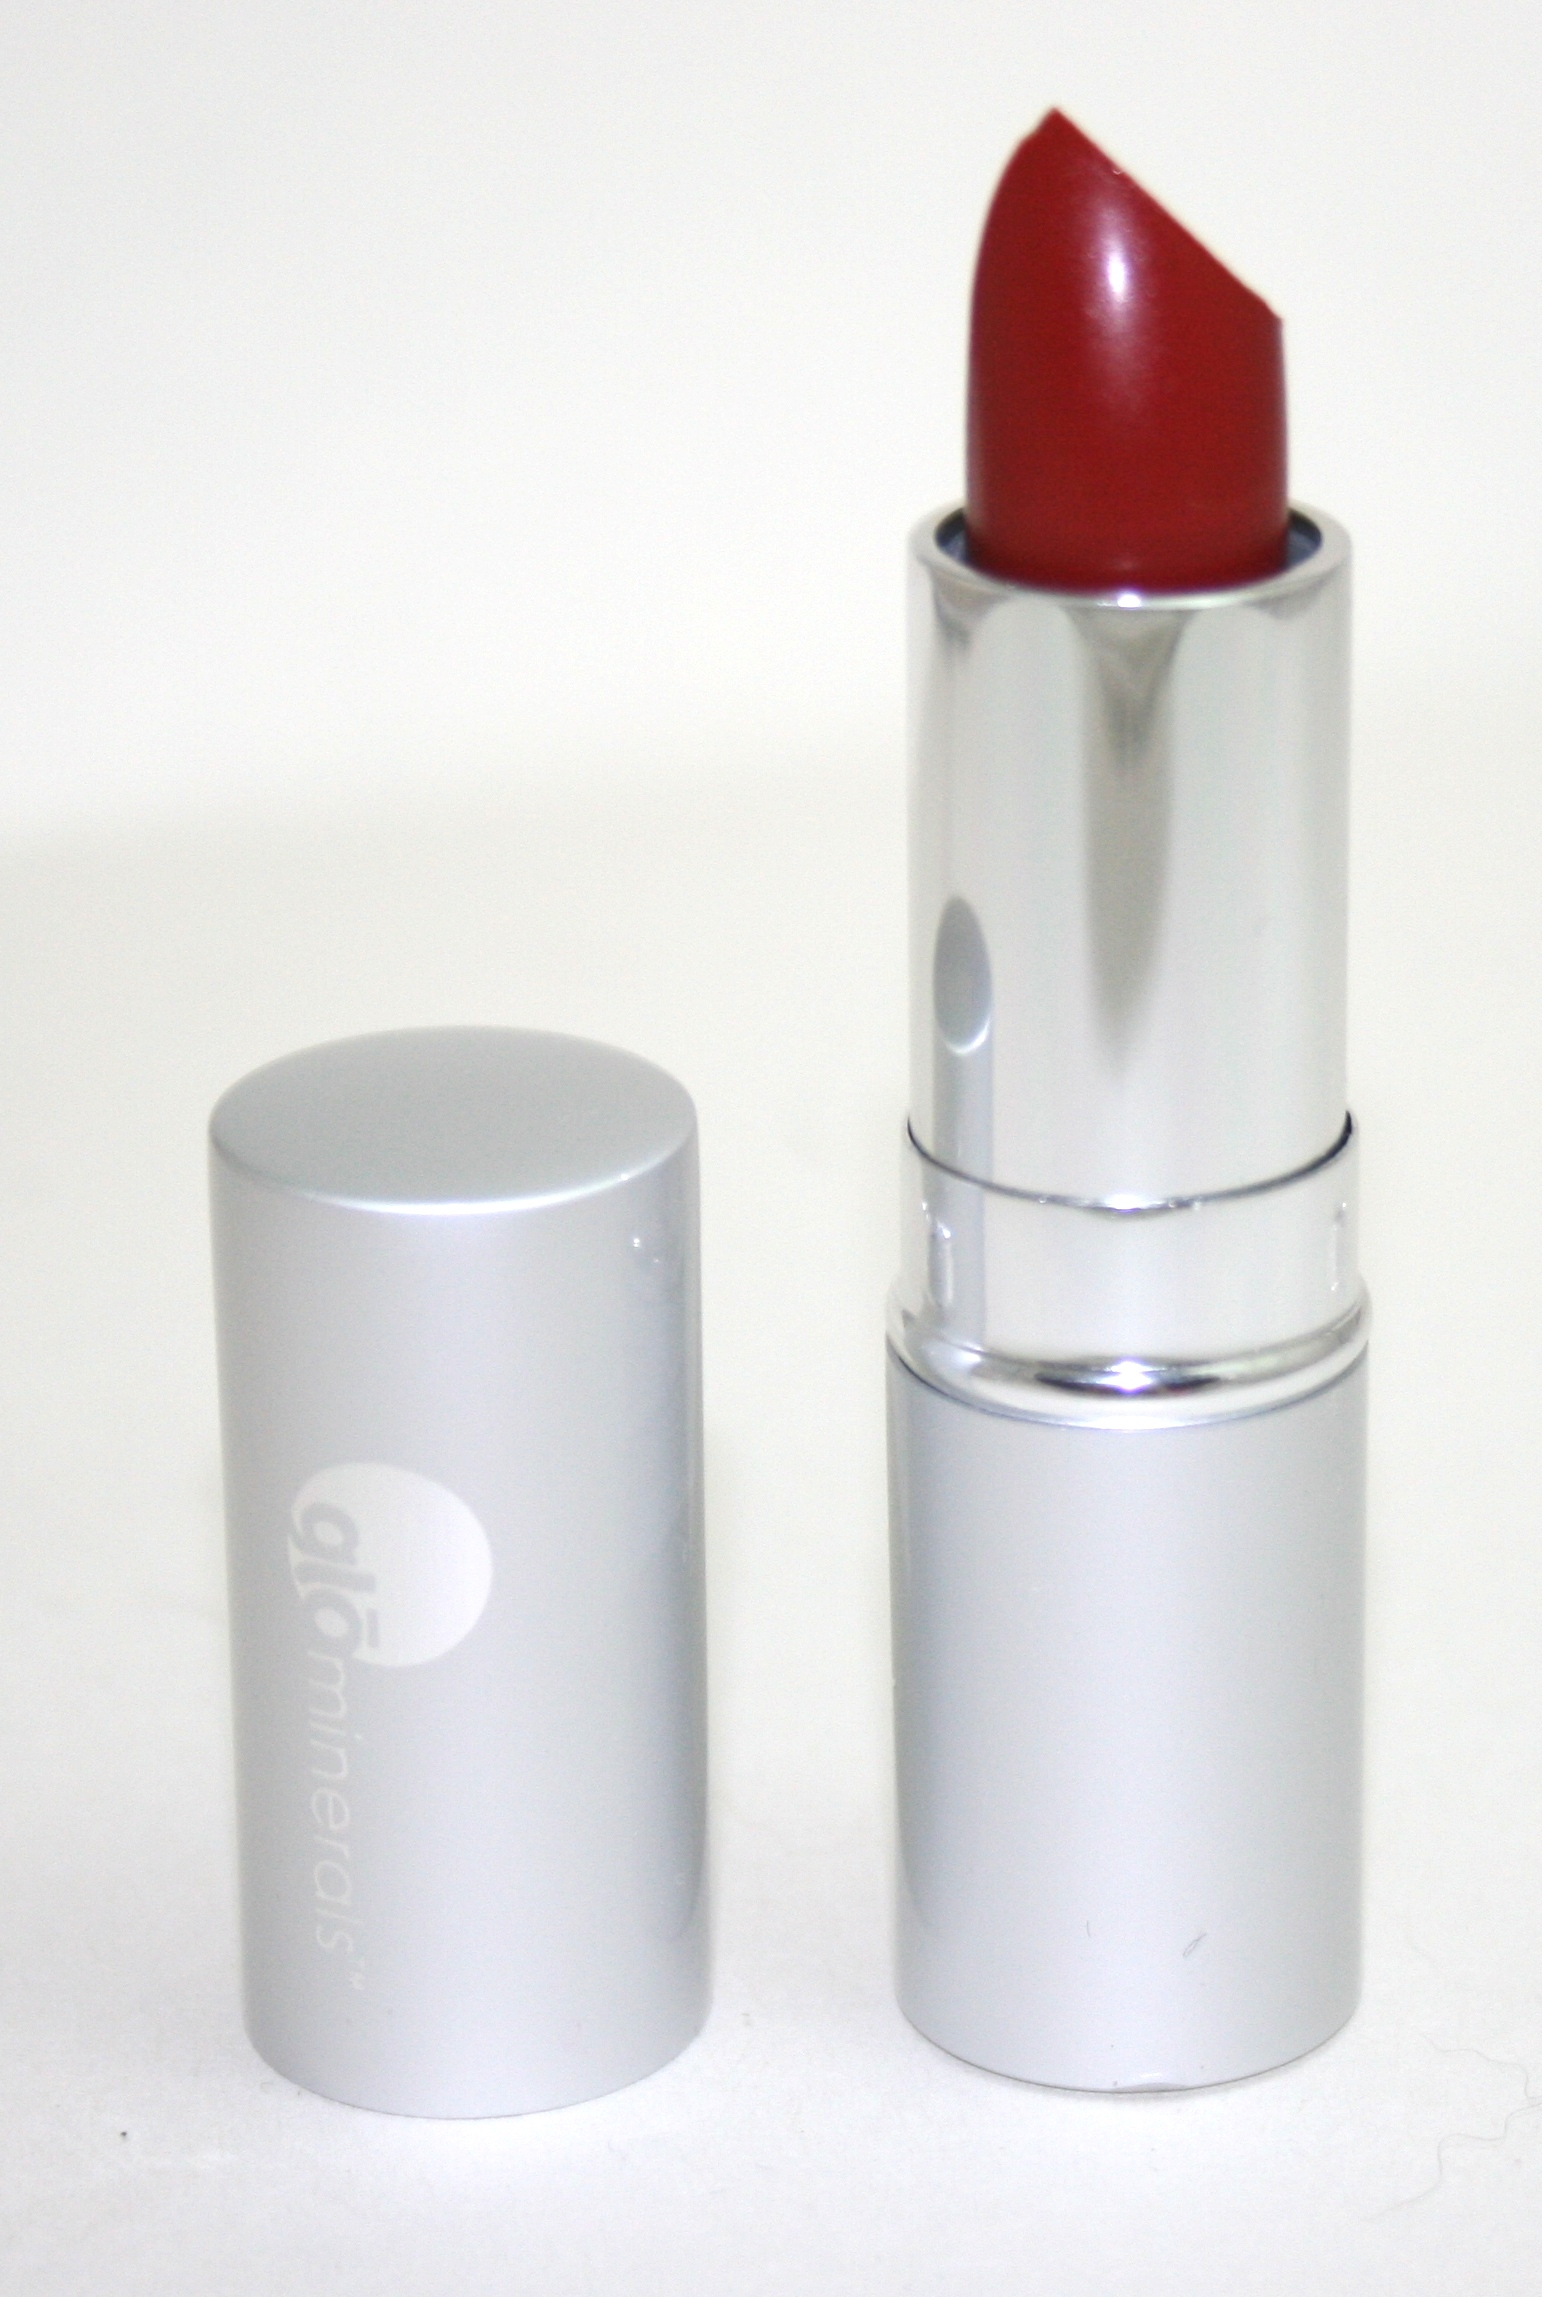 Glo Minerals Lipstick in Bali - Beauty Geek